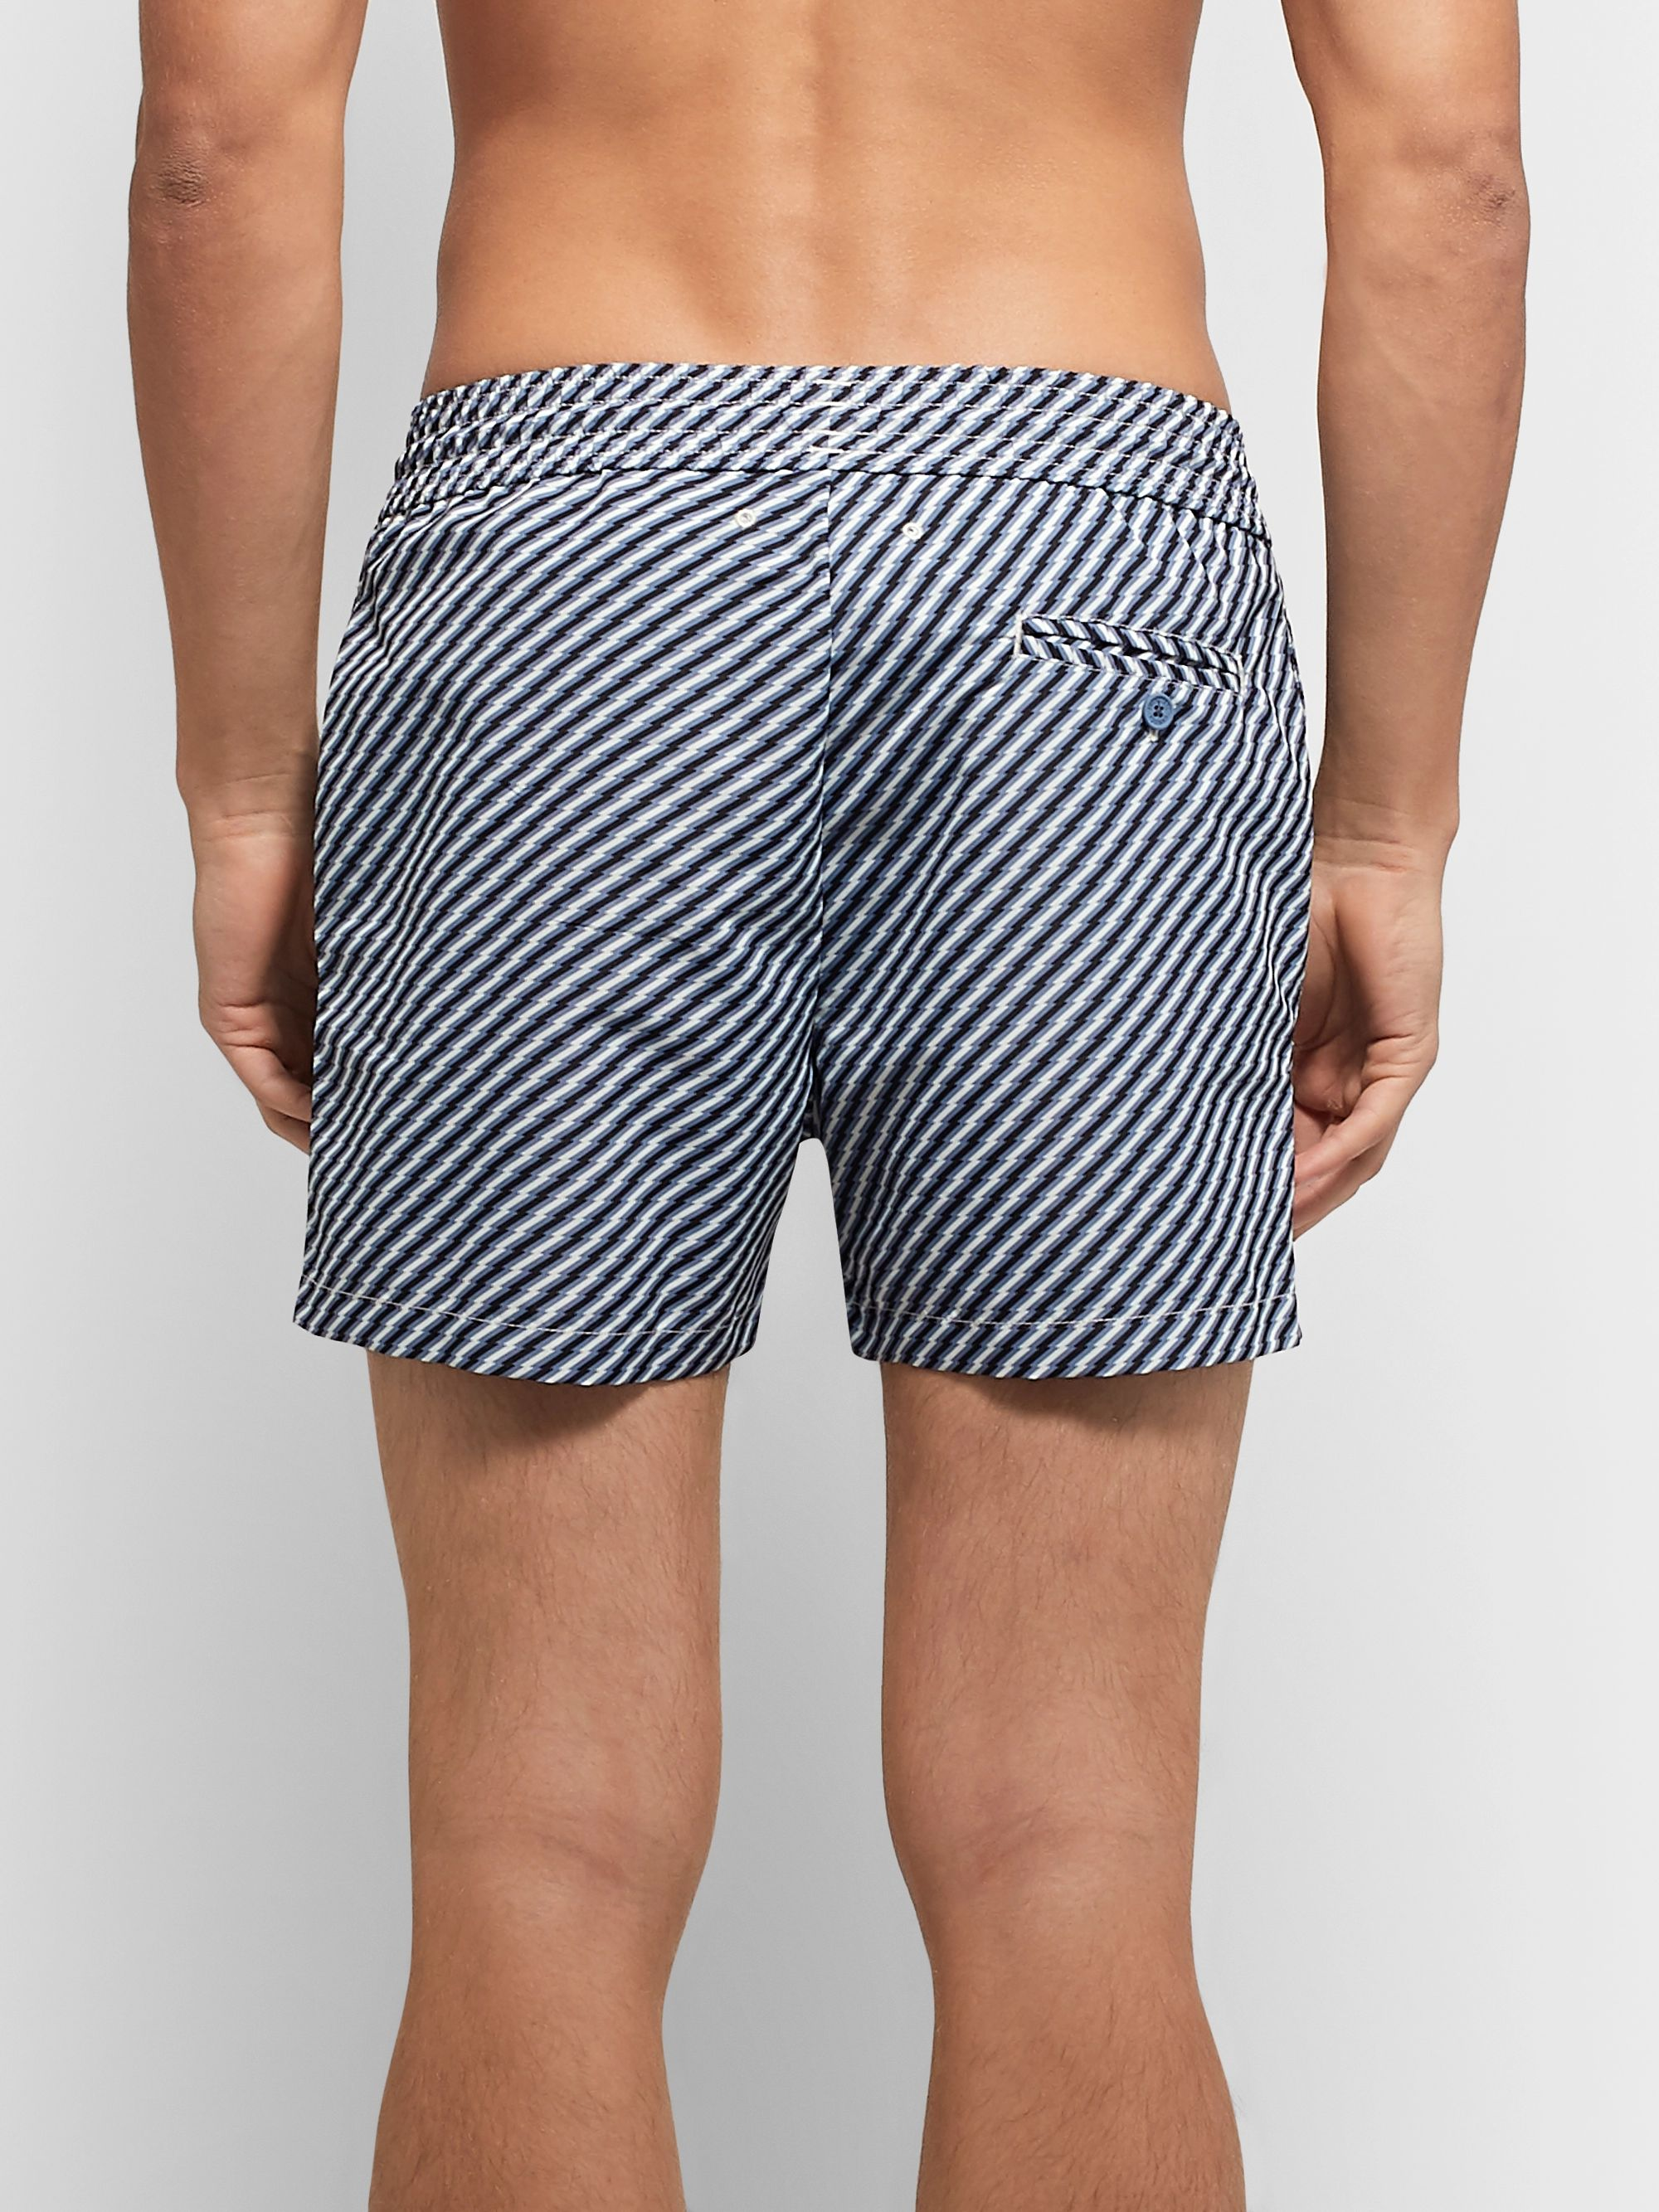 Frescobol Carioca Pepê Slim-Fit Short-Length Printed Swim Shorts